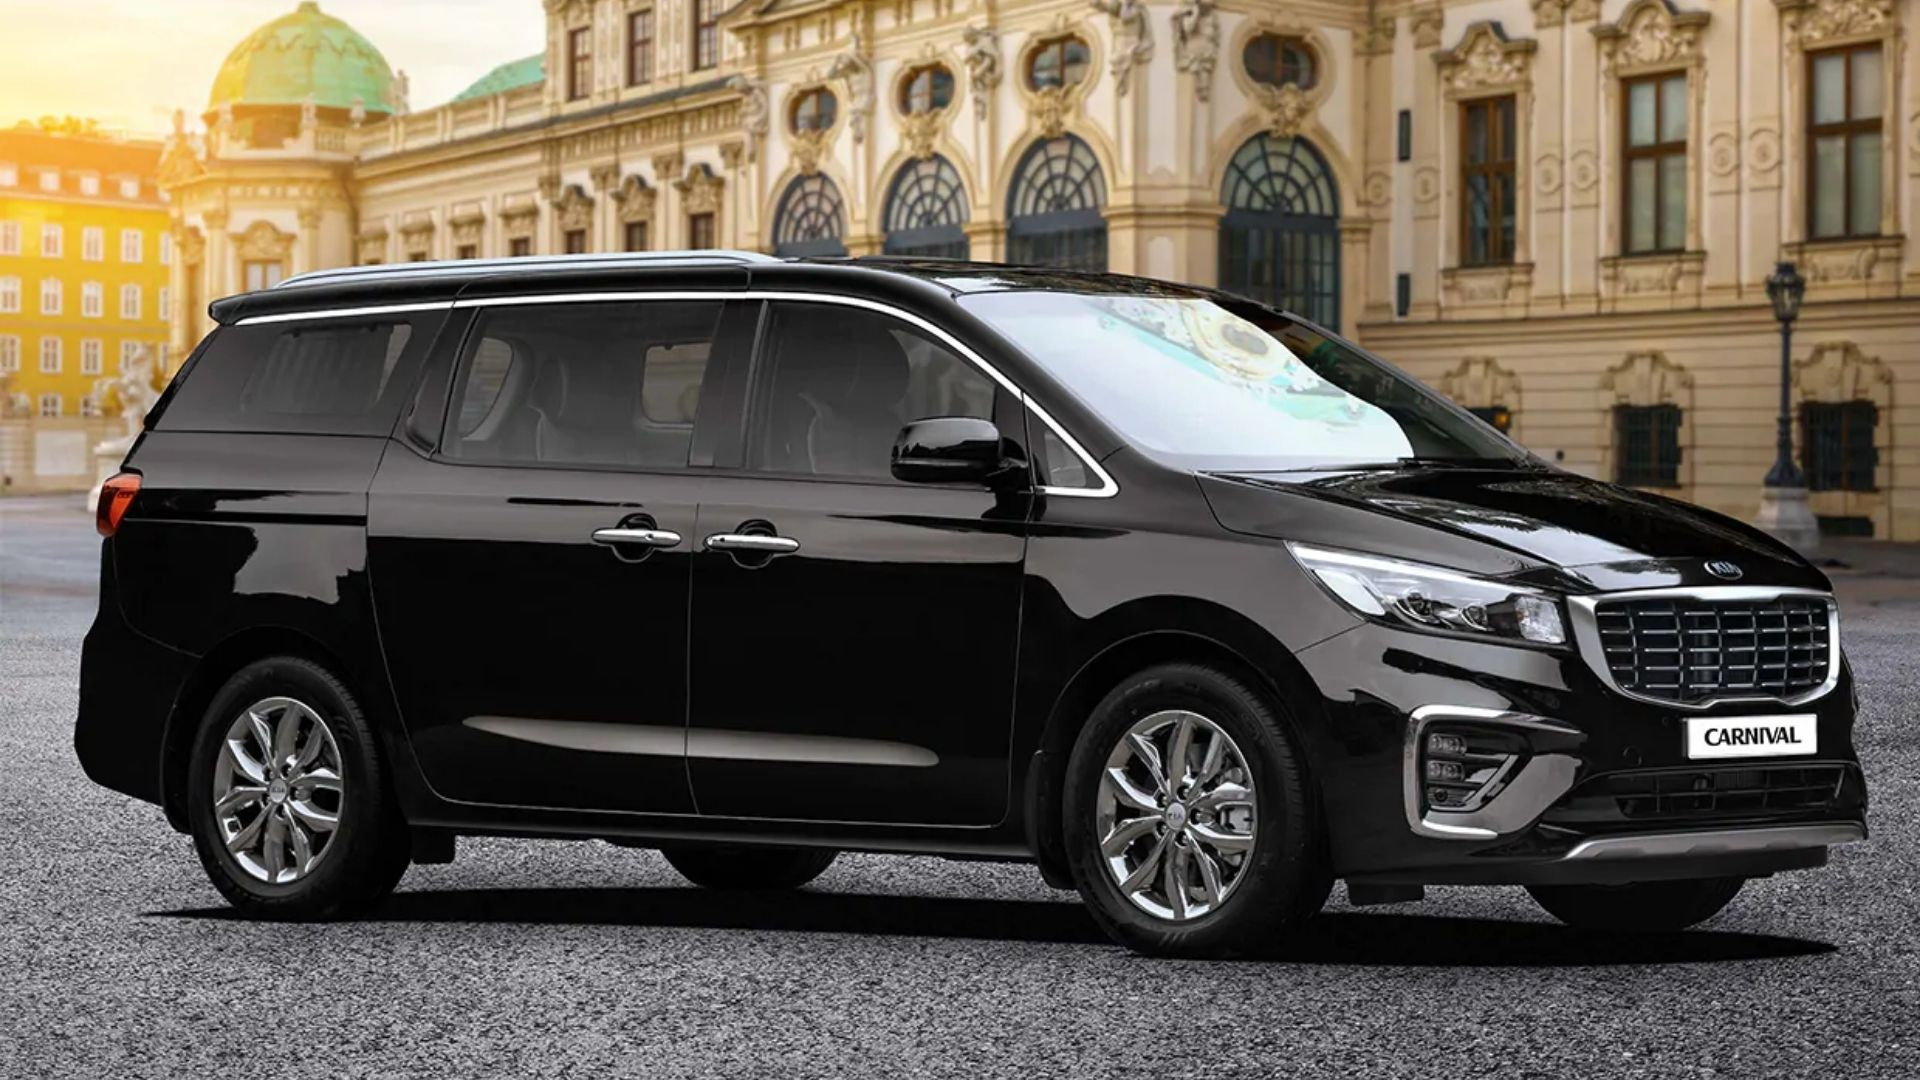 Is Kia Carnival Worth the Price Tag